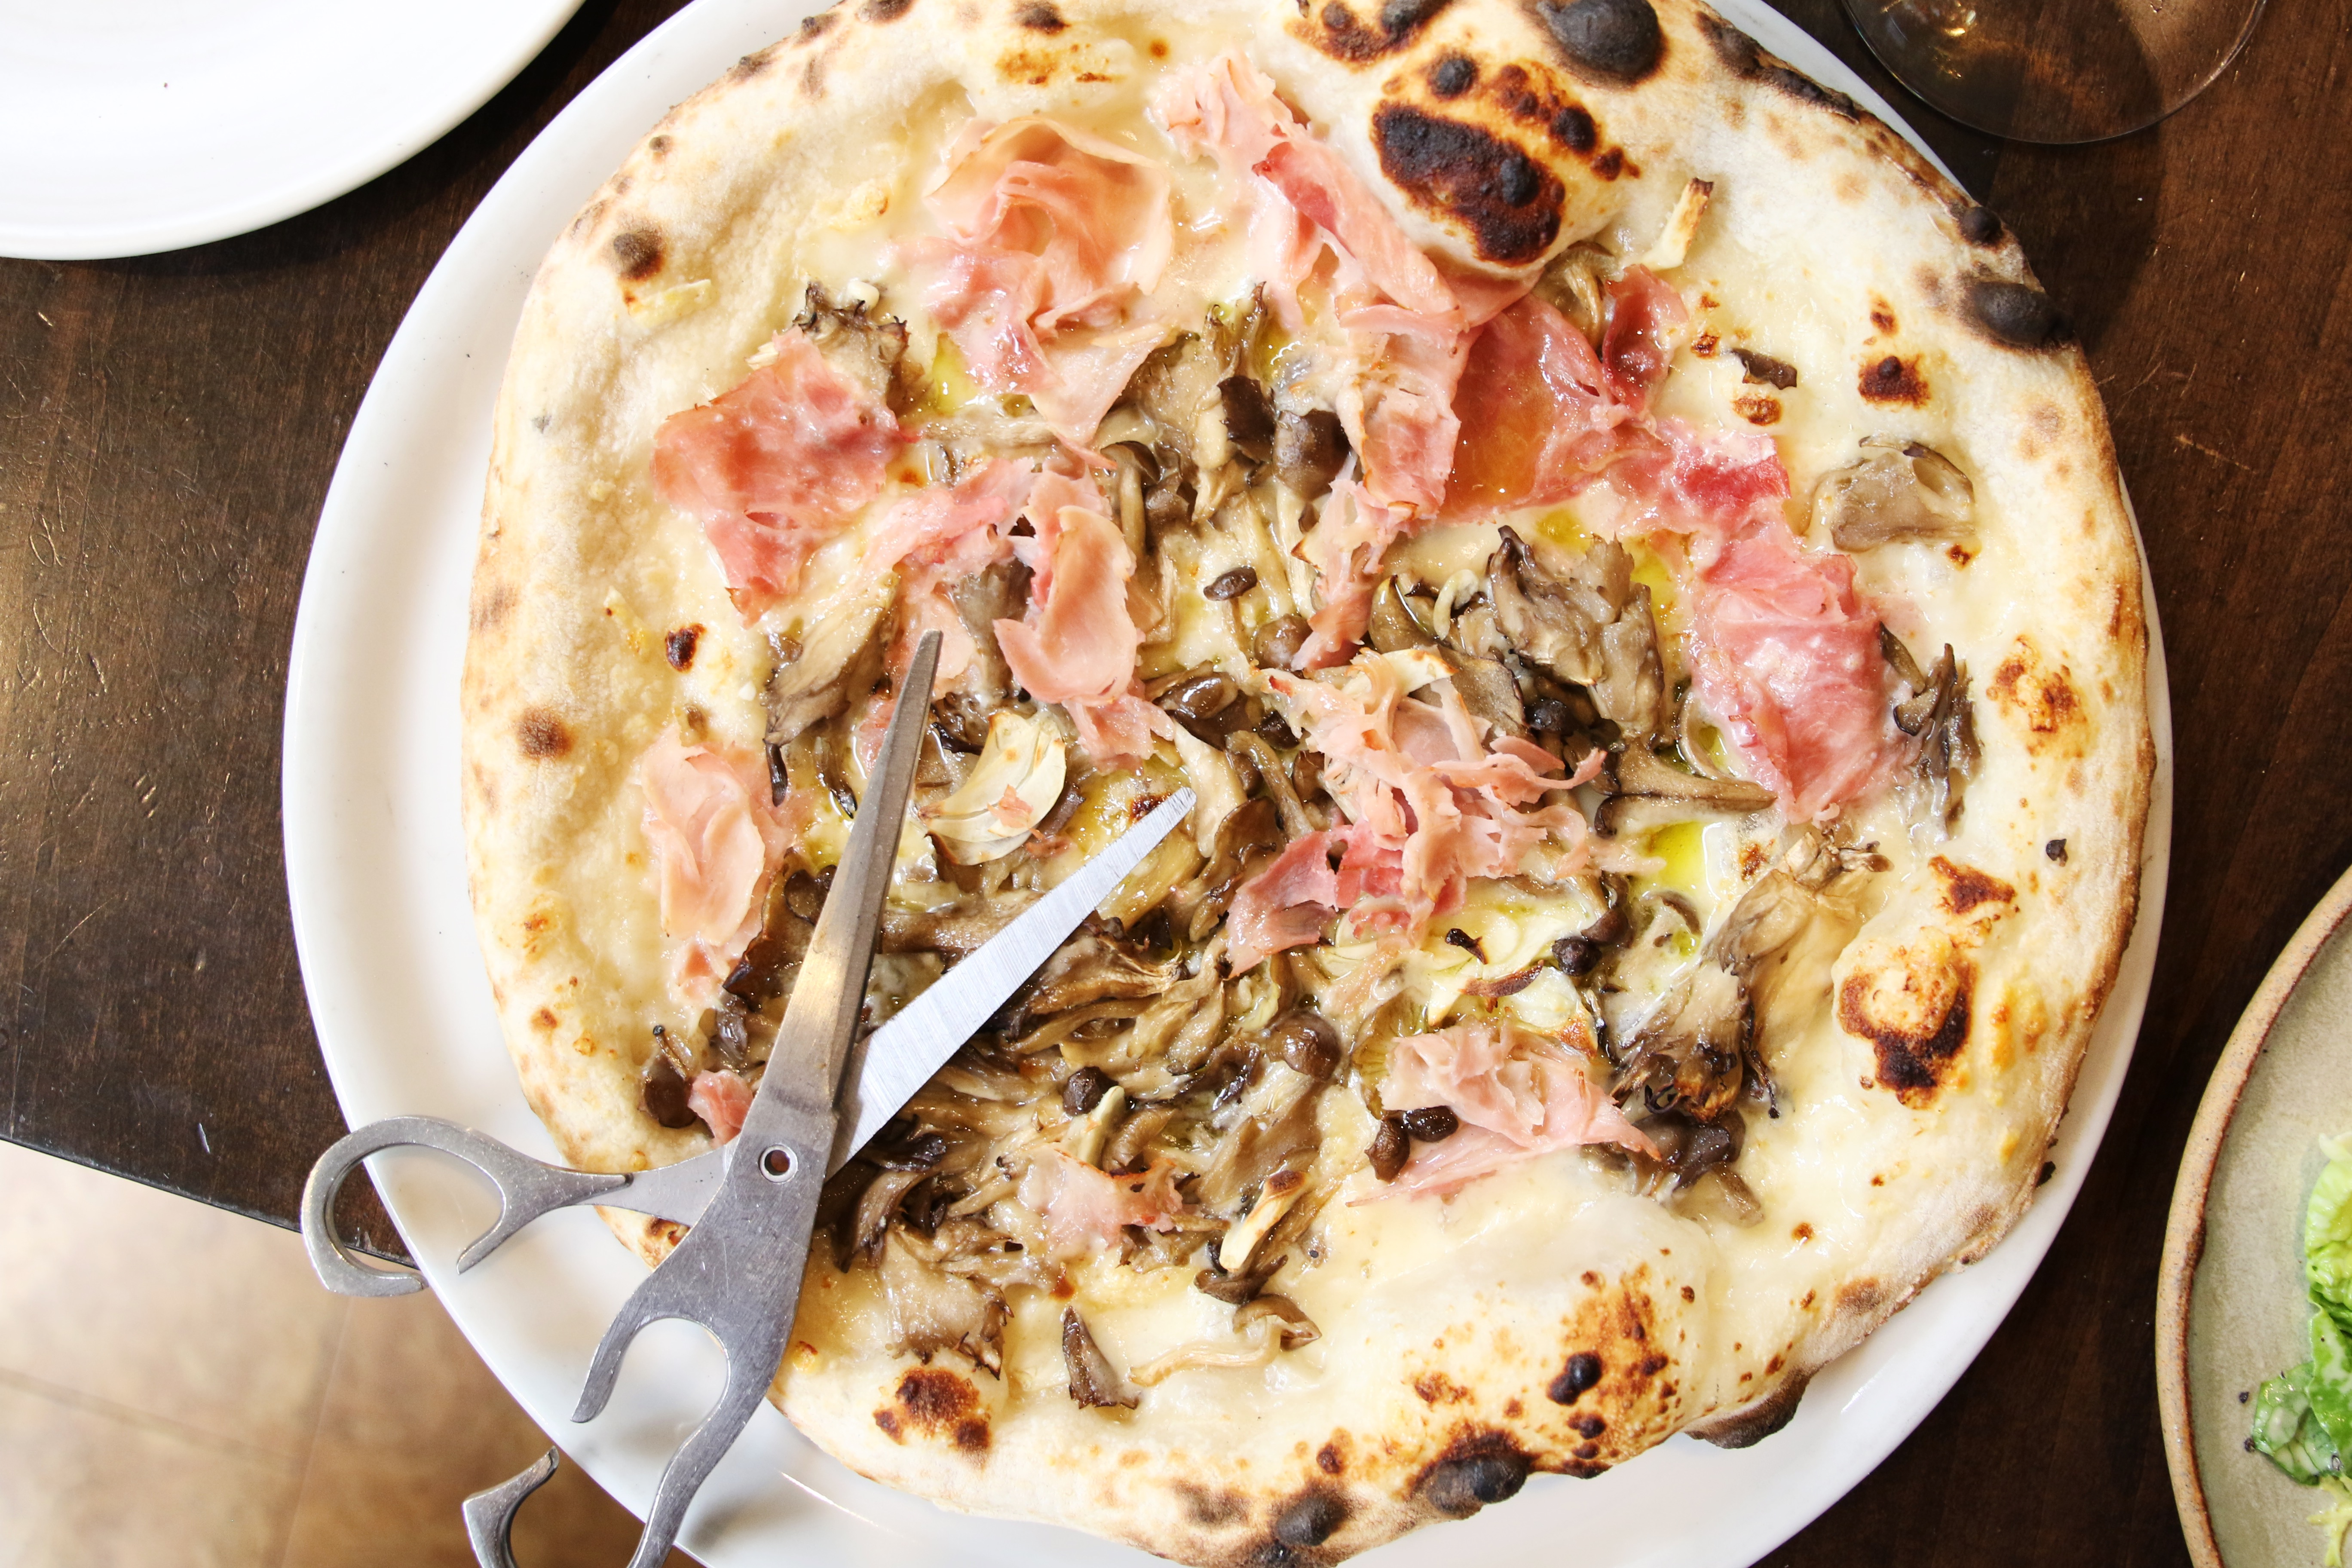 Prosciutto and Mushroom Pizza A16 restaurant review